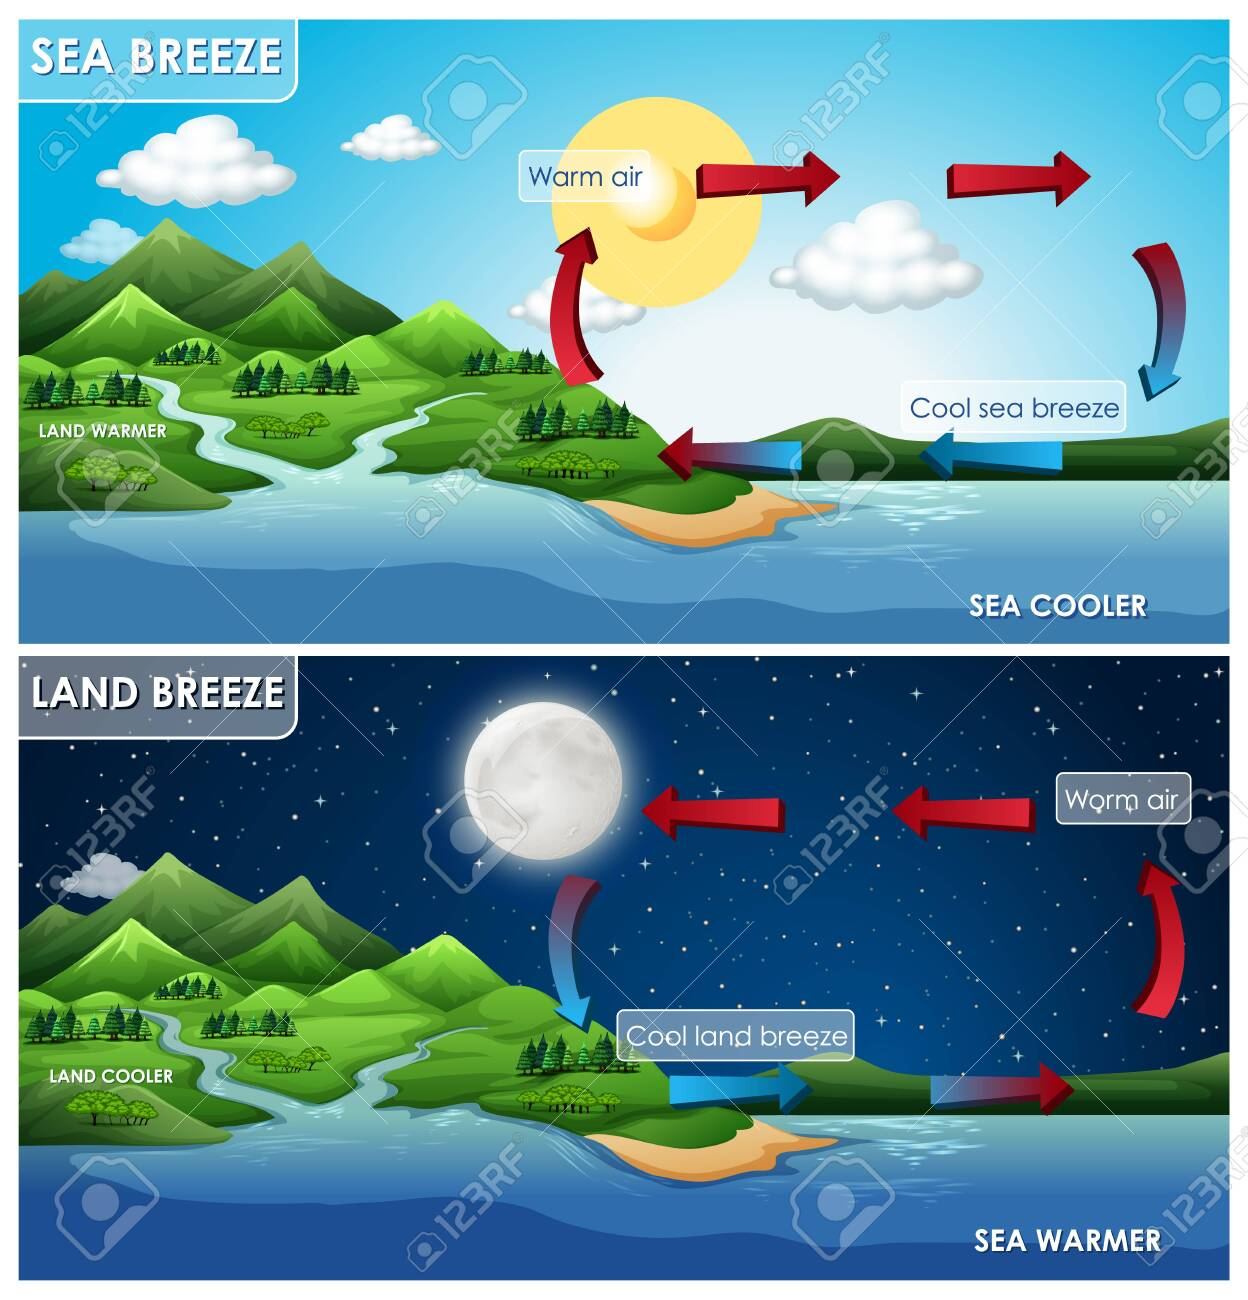 Science poster design for land and sea breeze illustration - 133639397